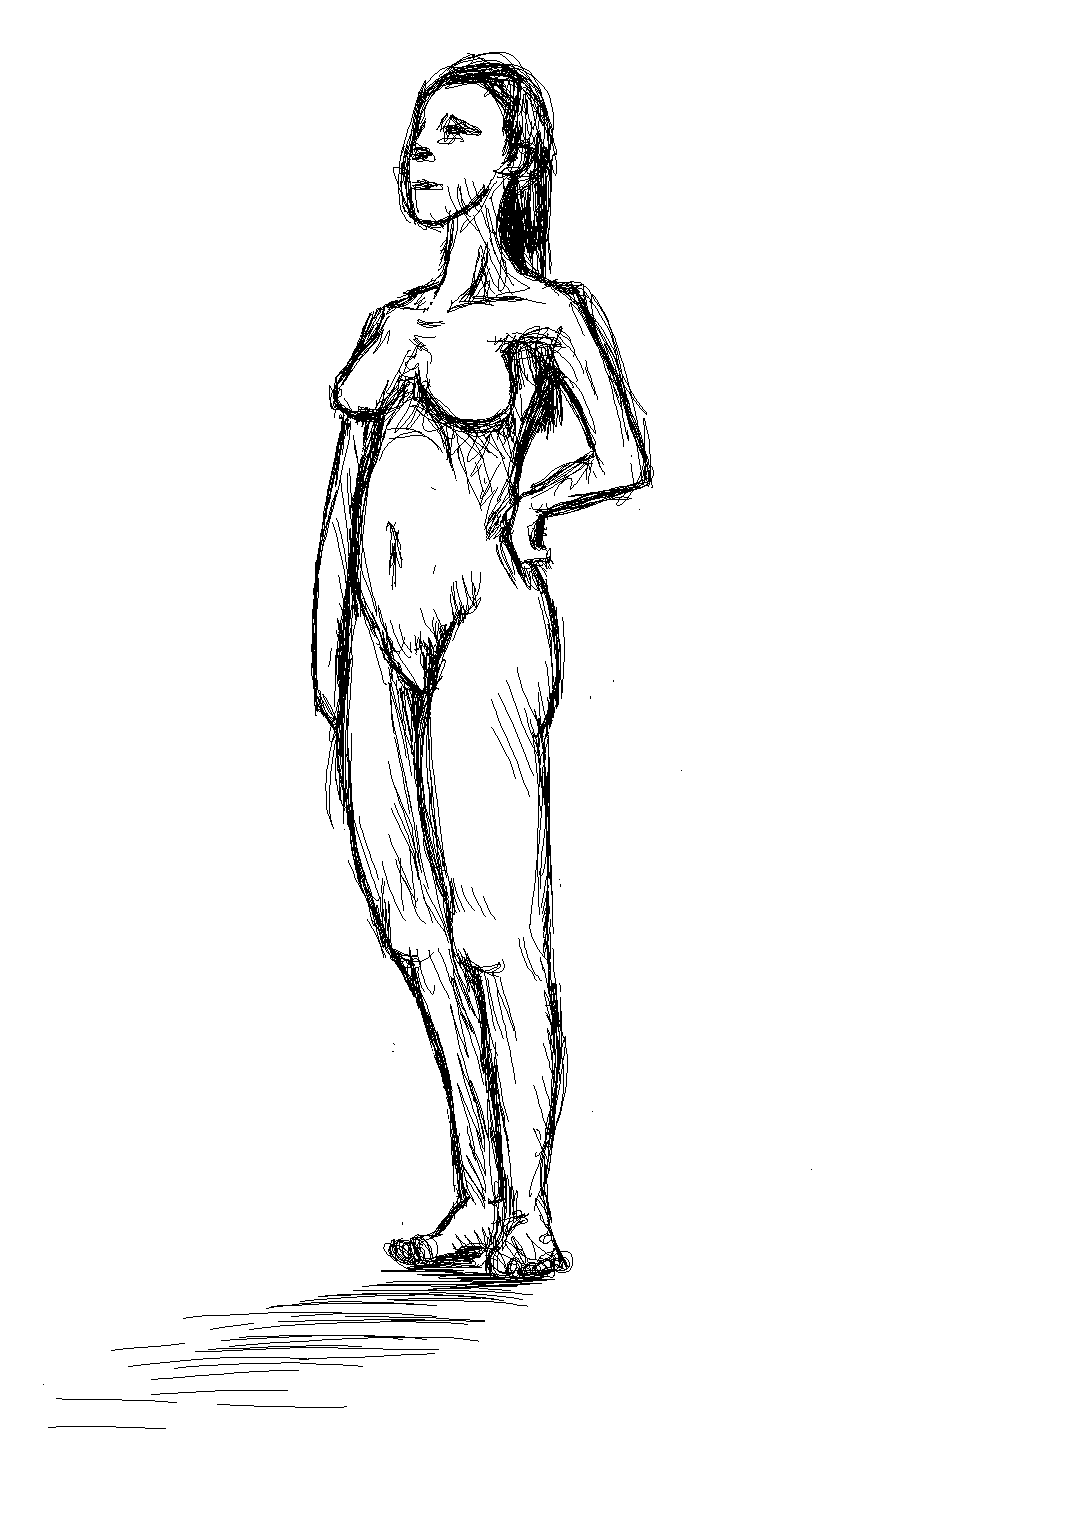 How do I draw a girl without being porn >¦-(